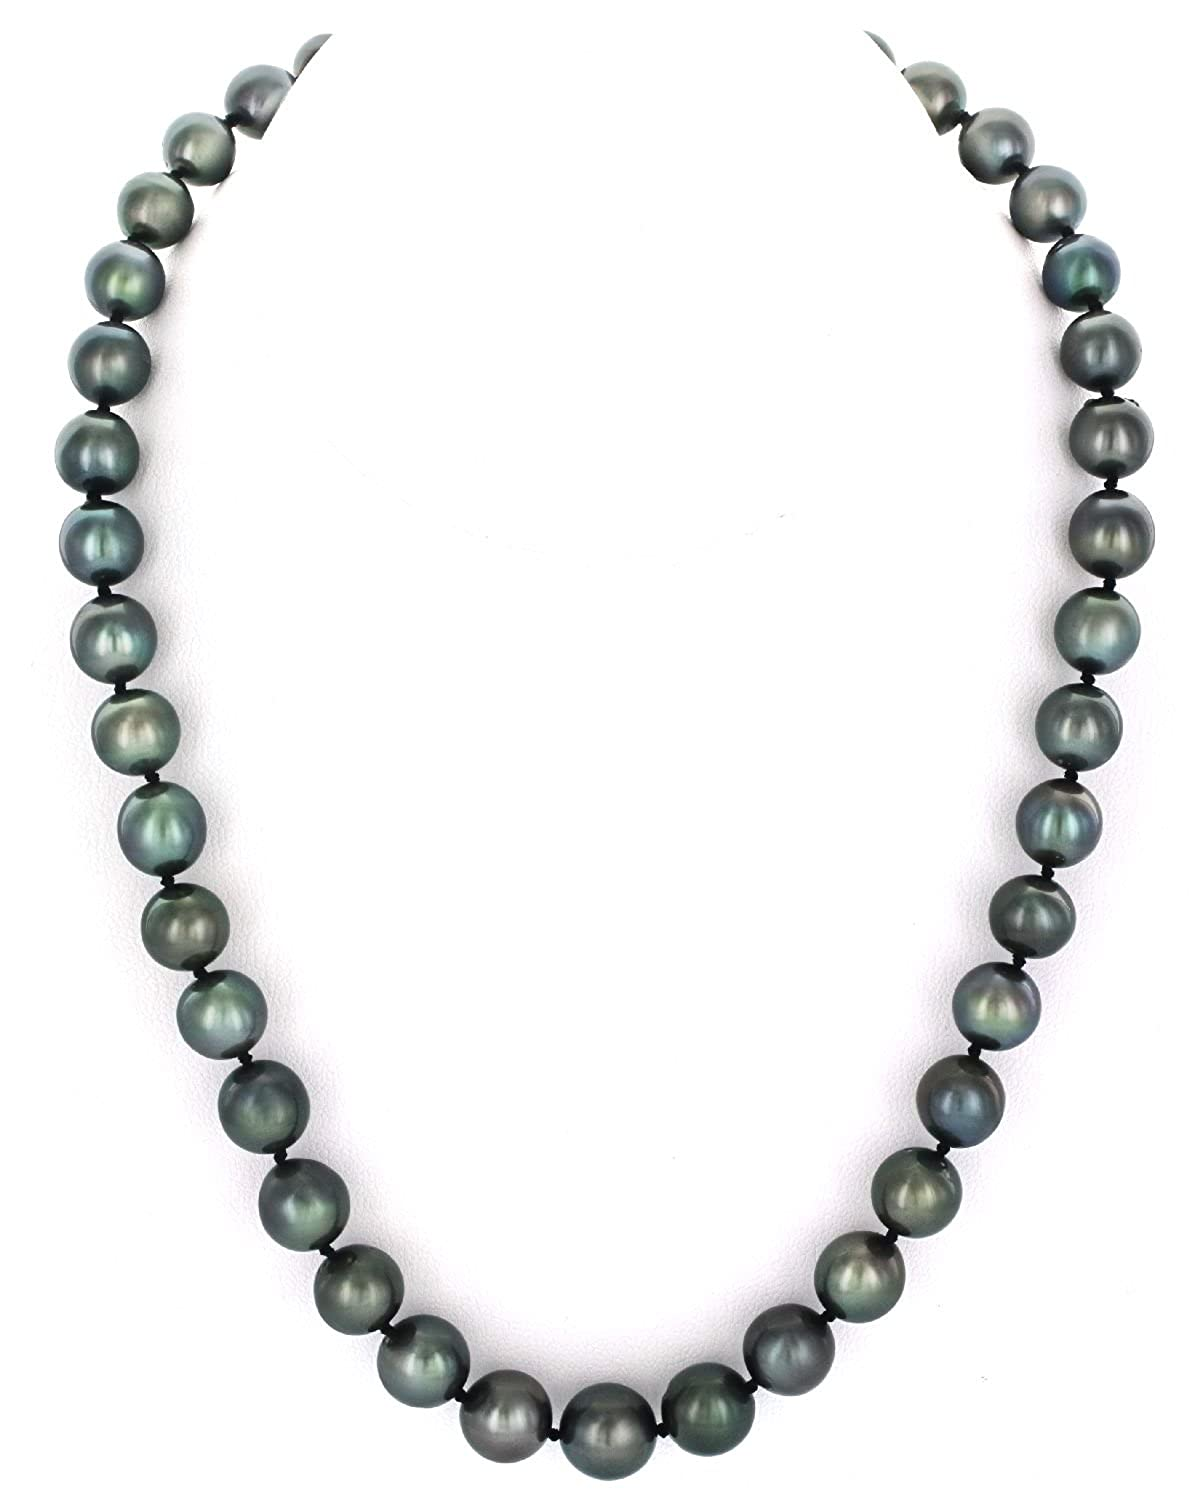 THE PEARL SOURCE 14K Gold 9-11mm Round Genuine Black Tahitian South Sea Cultured Pearl Necklace in 18 Princess Length for Women